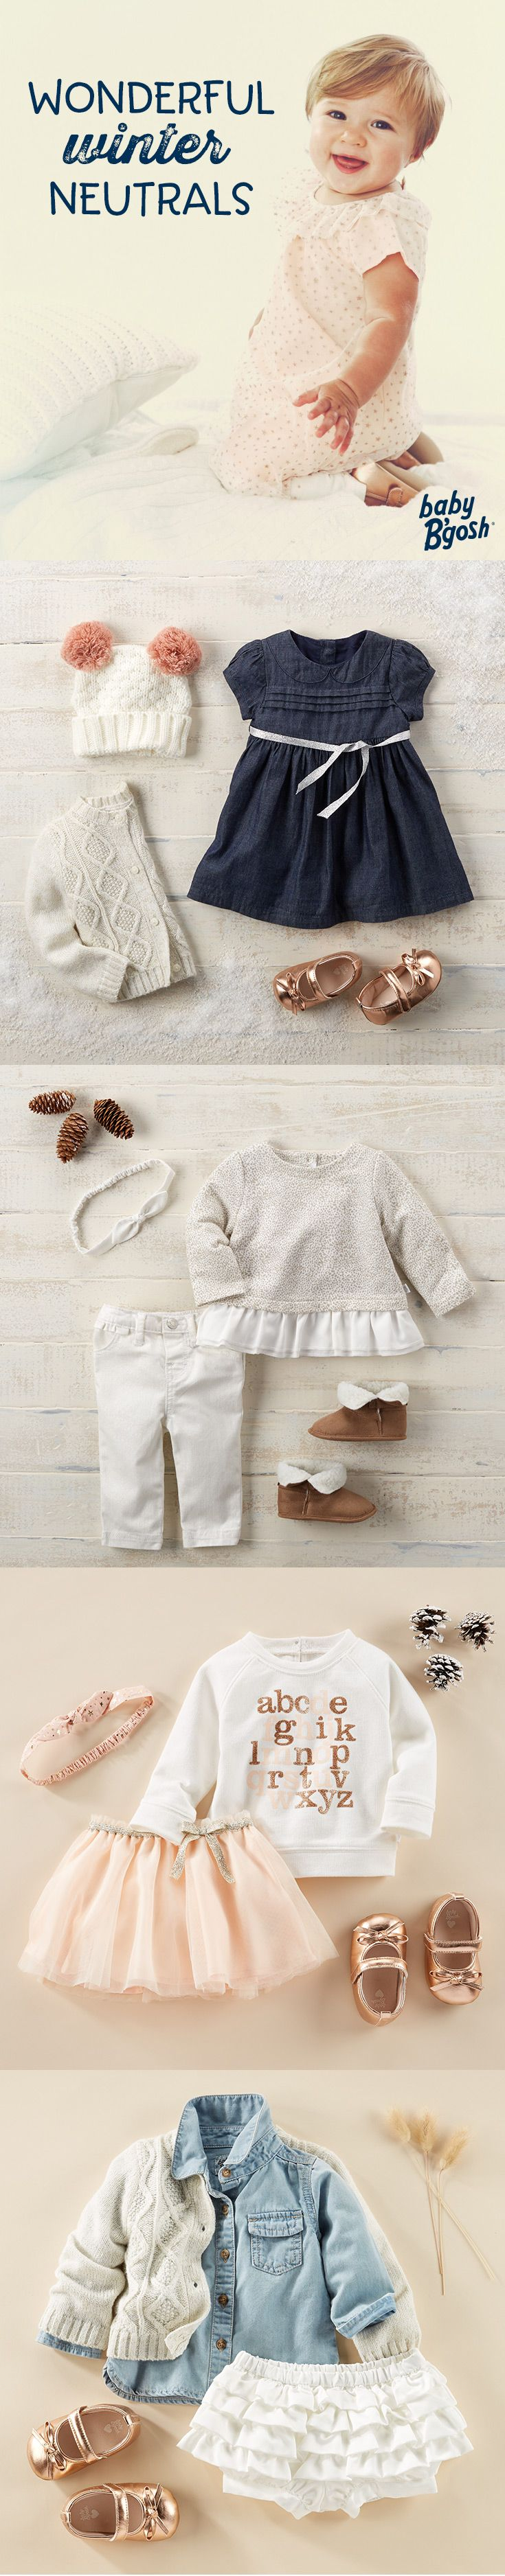 WONDERFUL WINTER NEUTRALS: A little pink and a lot of love goes into these looks from Baby B'gosh. Add a festive touch with tiny metallic ballet flats!